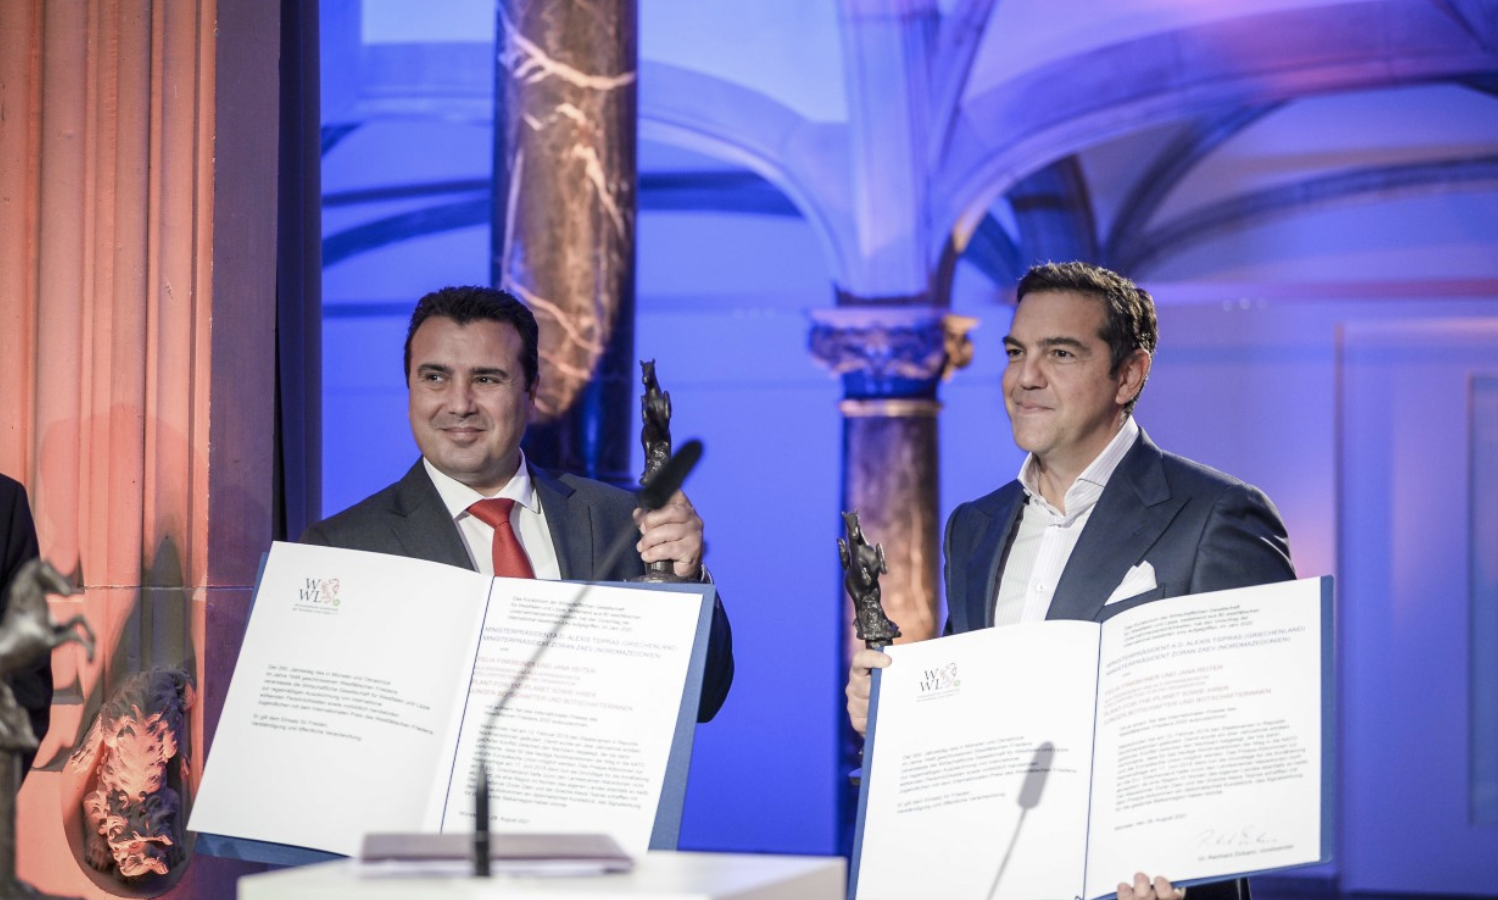 Zaev and Tsipras were awarded with the Peace Prize of Westphalia 2020